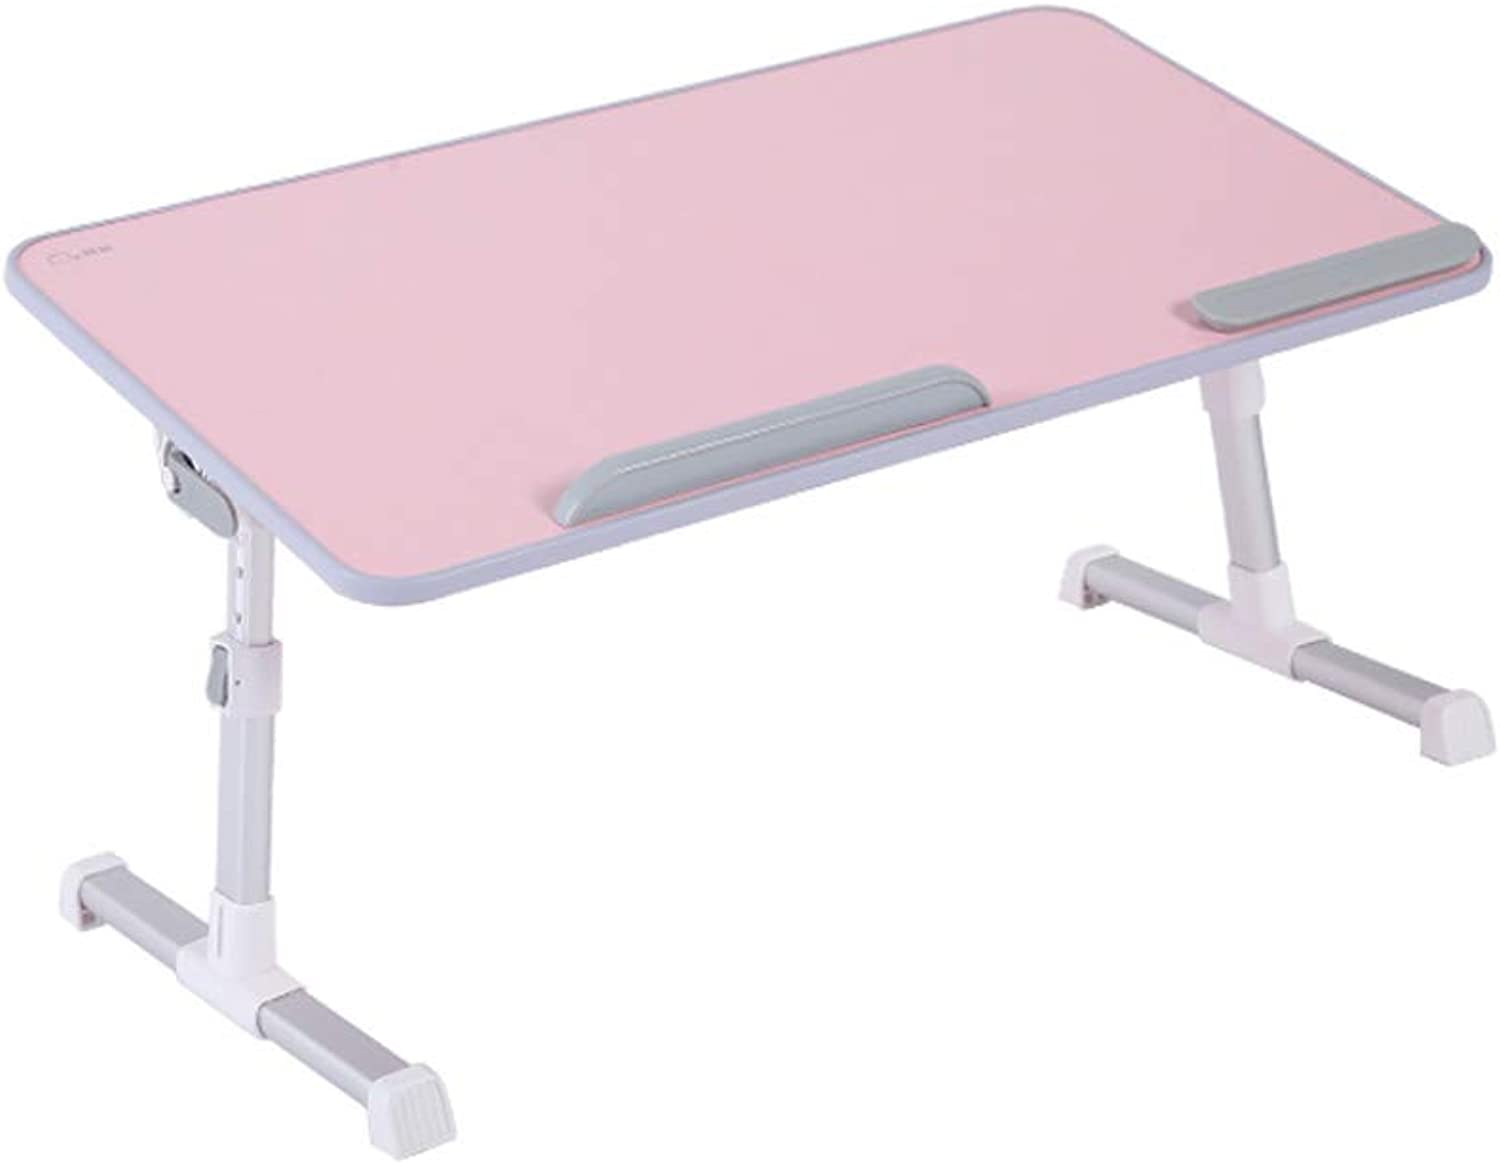 CQ Pink Bed Desk Foldable Lifting Small Table Female College Dormitory with Lazy Laptop to Make Table